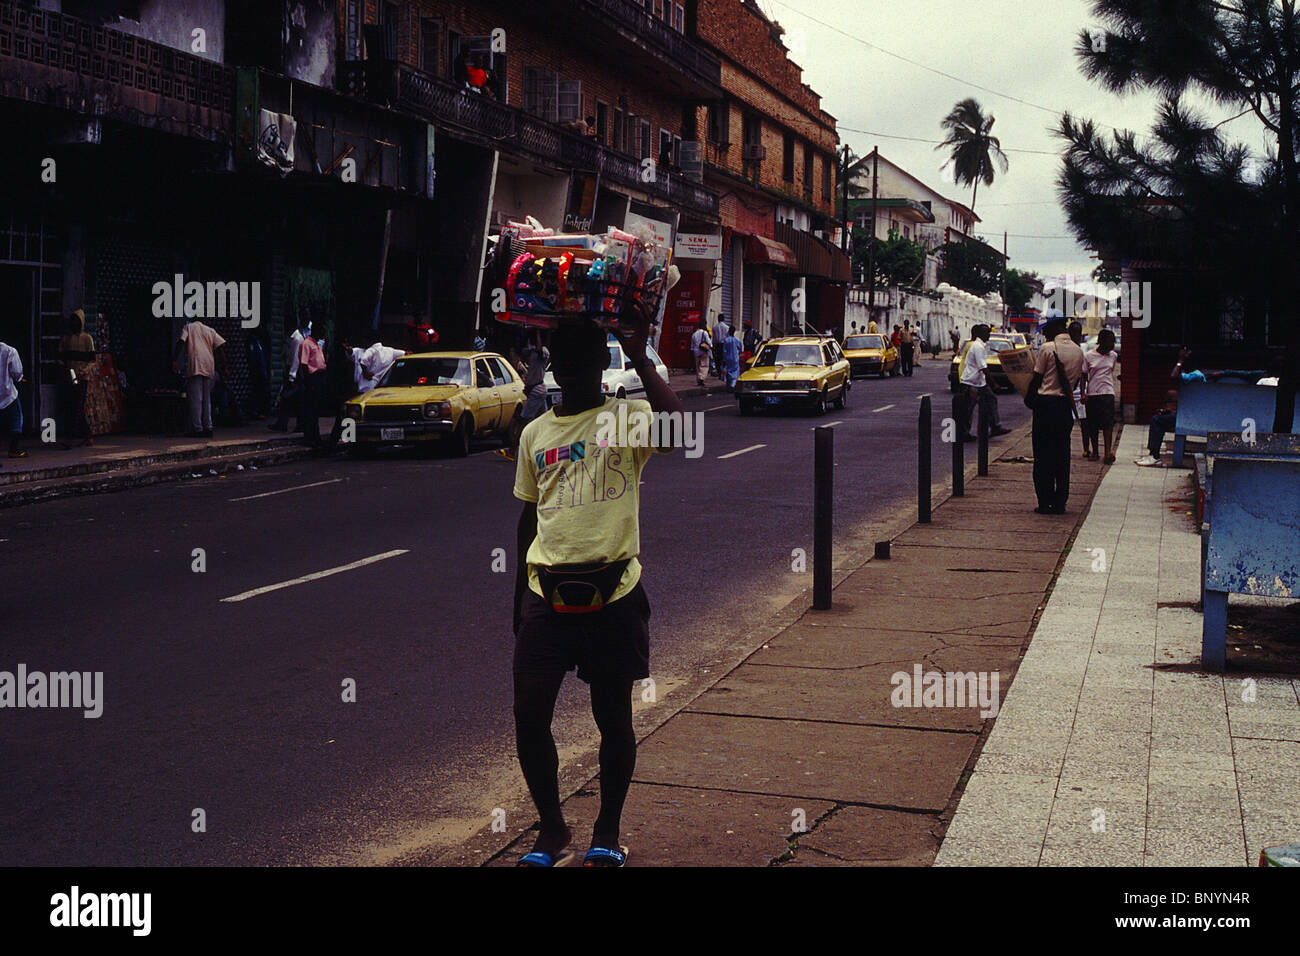 down town Monrovia in Liberia West Africa circa 1994 - Stock Image